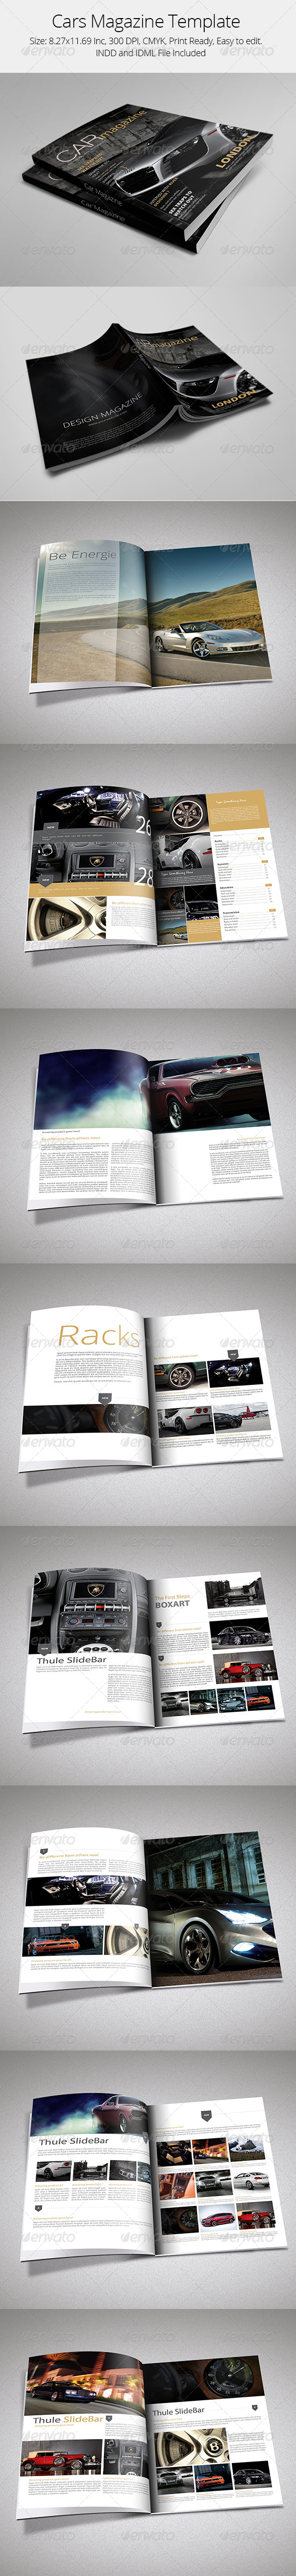 Cars Magazine Template - Magazines Print Templates